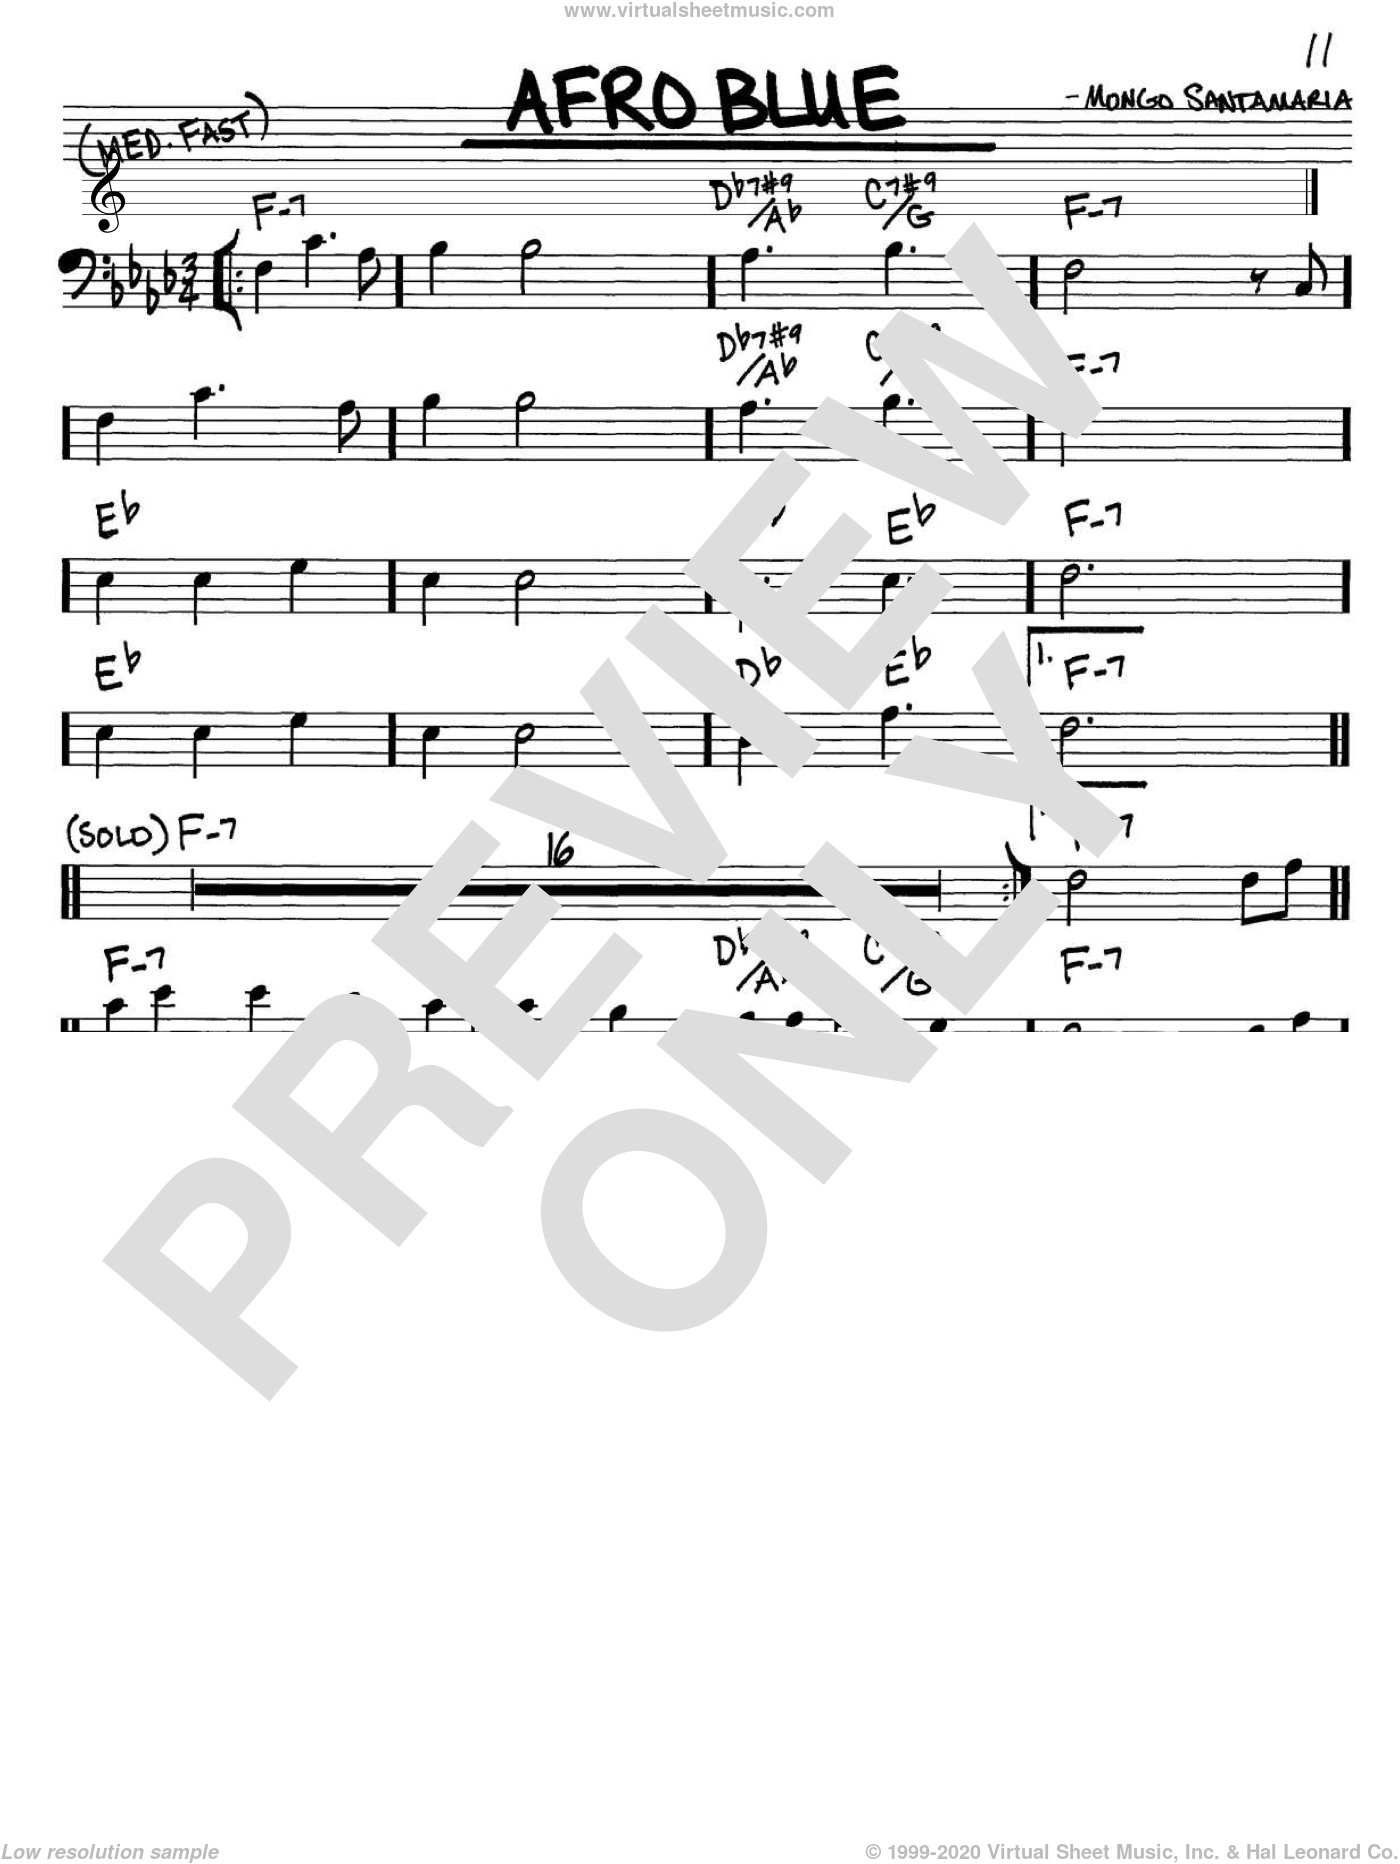 Afro Blue sheet music for voice and other instruments (bass clef) by John Coltrane and Mongo Santamaria, intermediate skill level